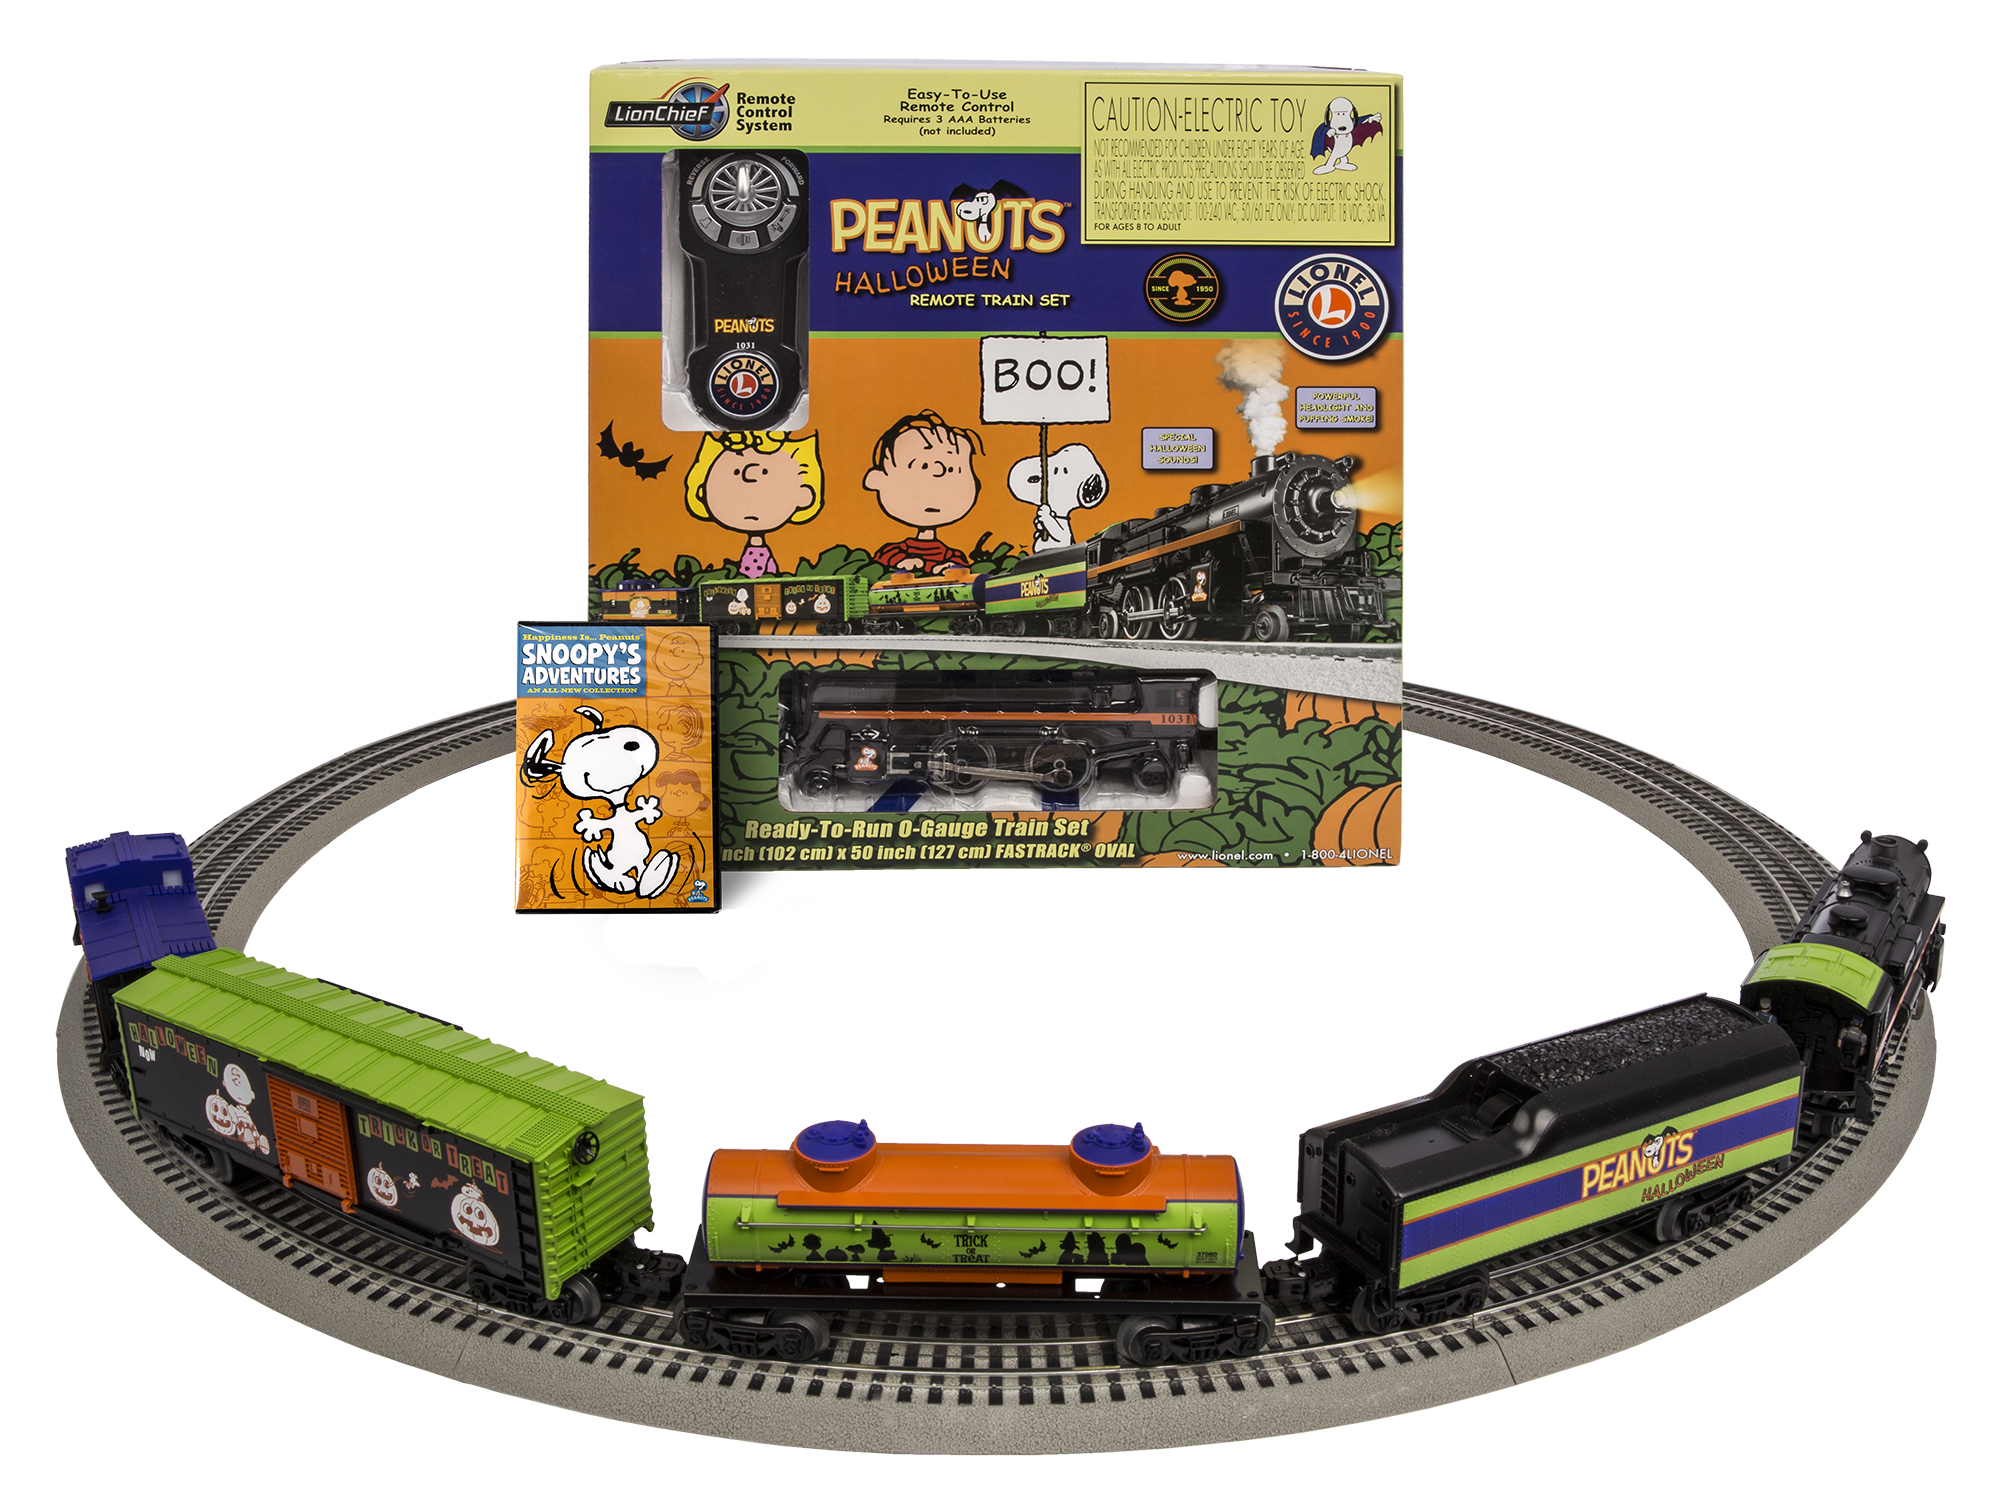 6-30214 PEANUTS® HALLOWEEN 2-4-2 STEAM LIONCHIEF SET